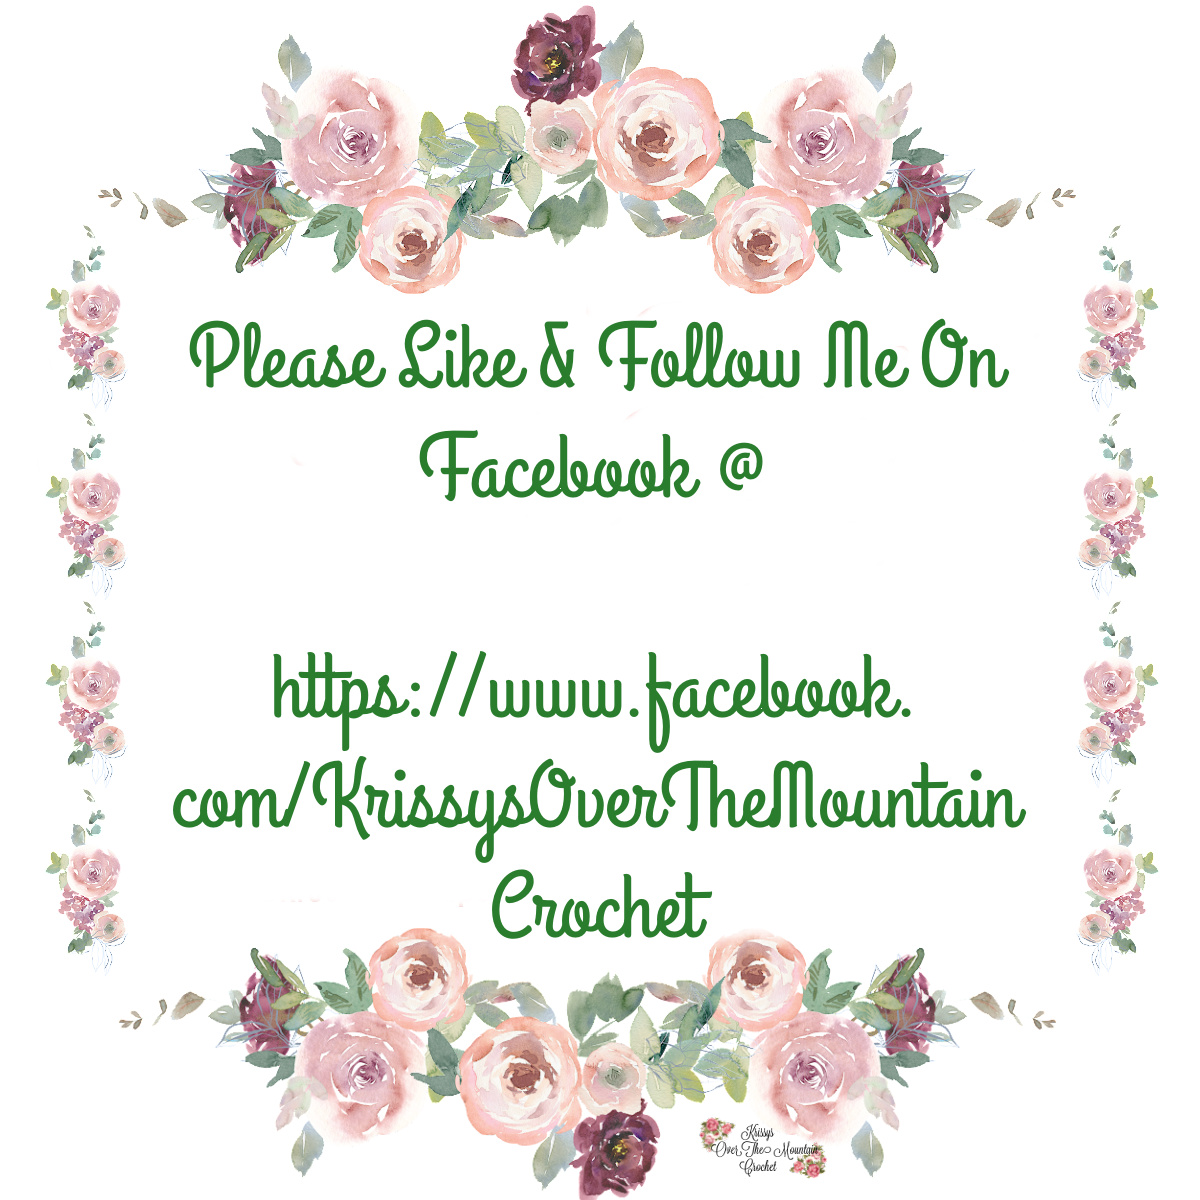 Please like and follow me @https://www.facebook.com/KrissysOverTheMountainCrochet